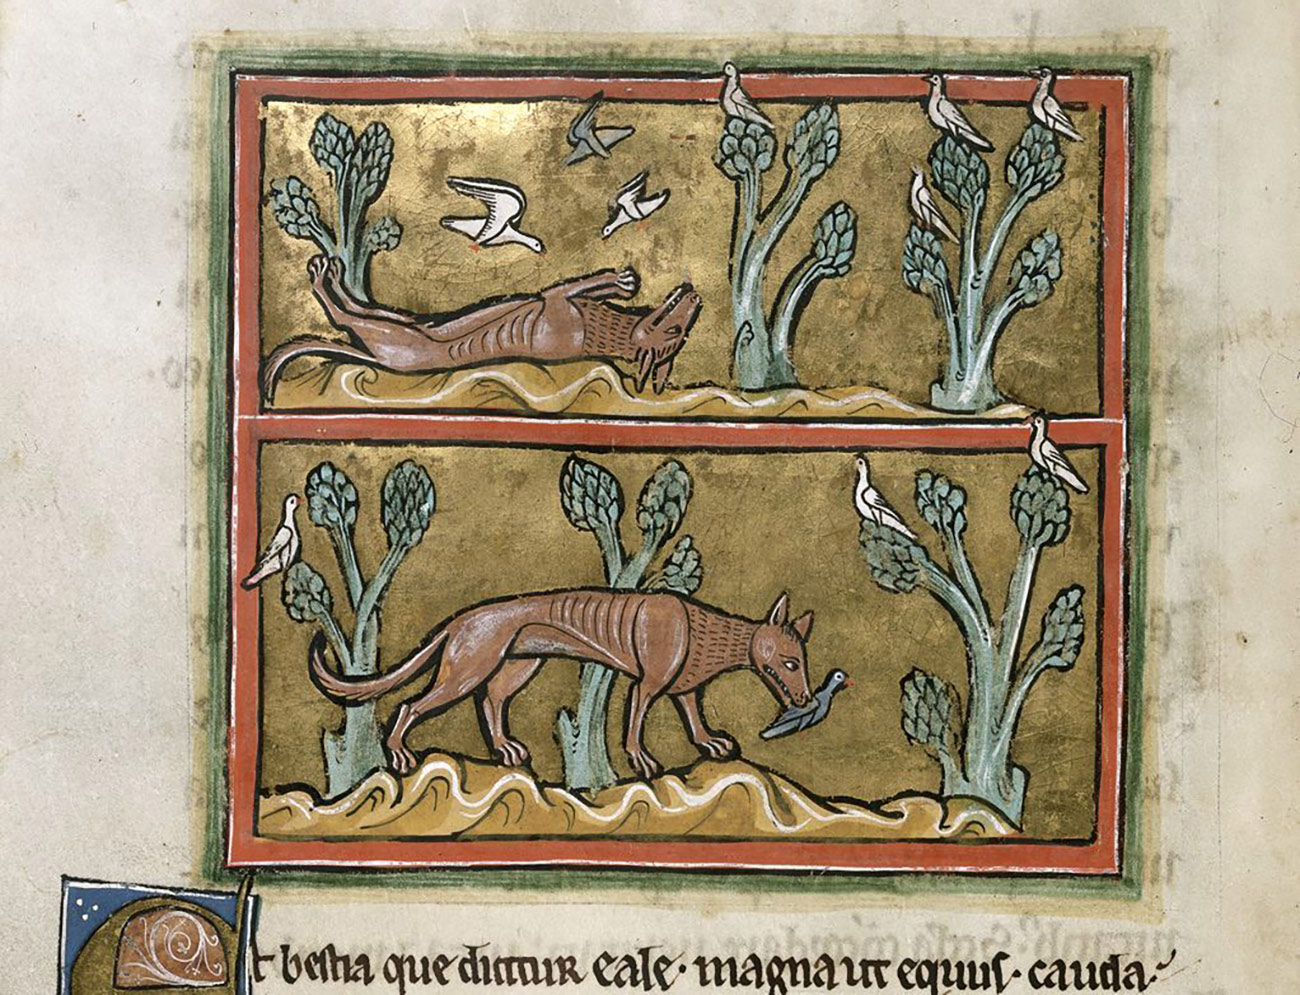 Two scenes depicting the fox. Above, the fox is depicted lying on its back with three birds circling above. Below, the fox is depicted with a bird in its mouth.